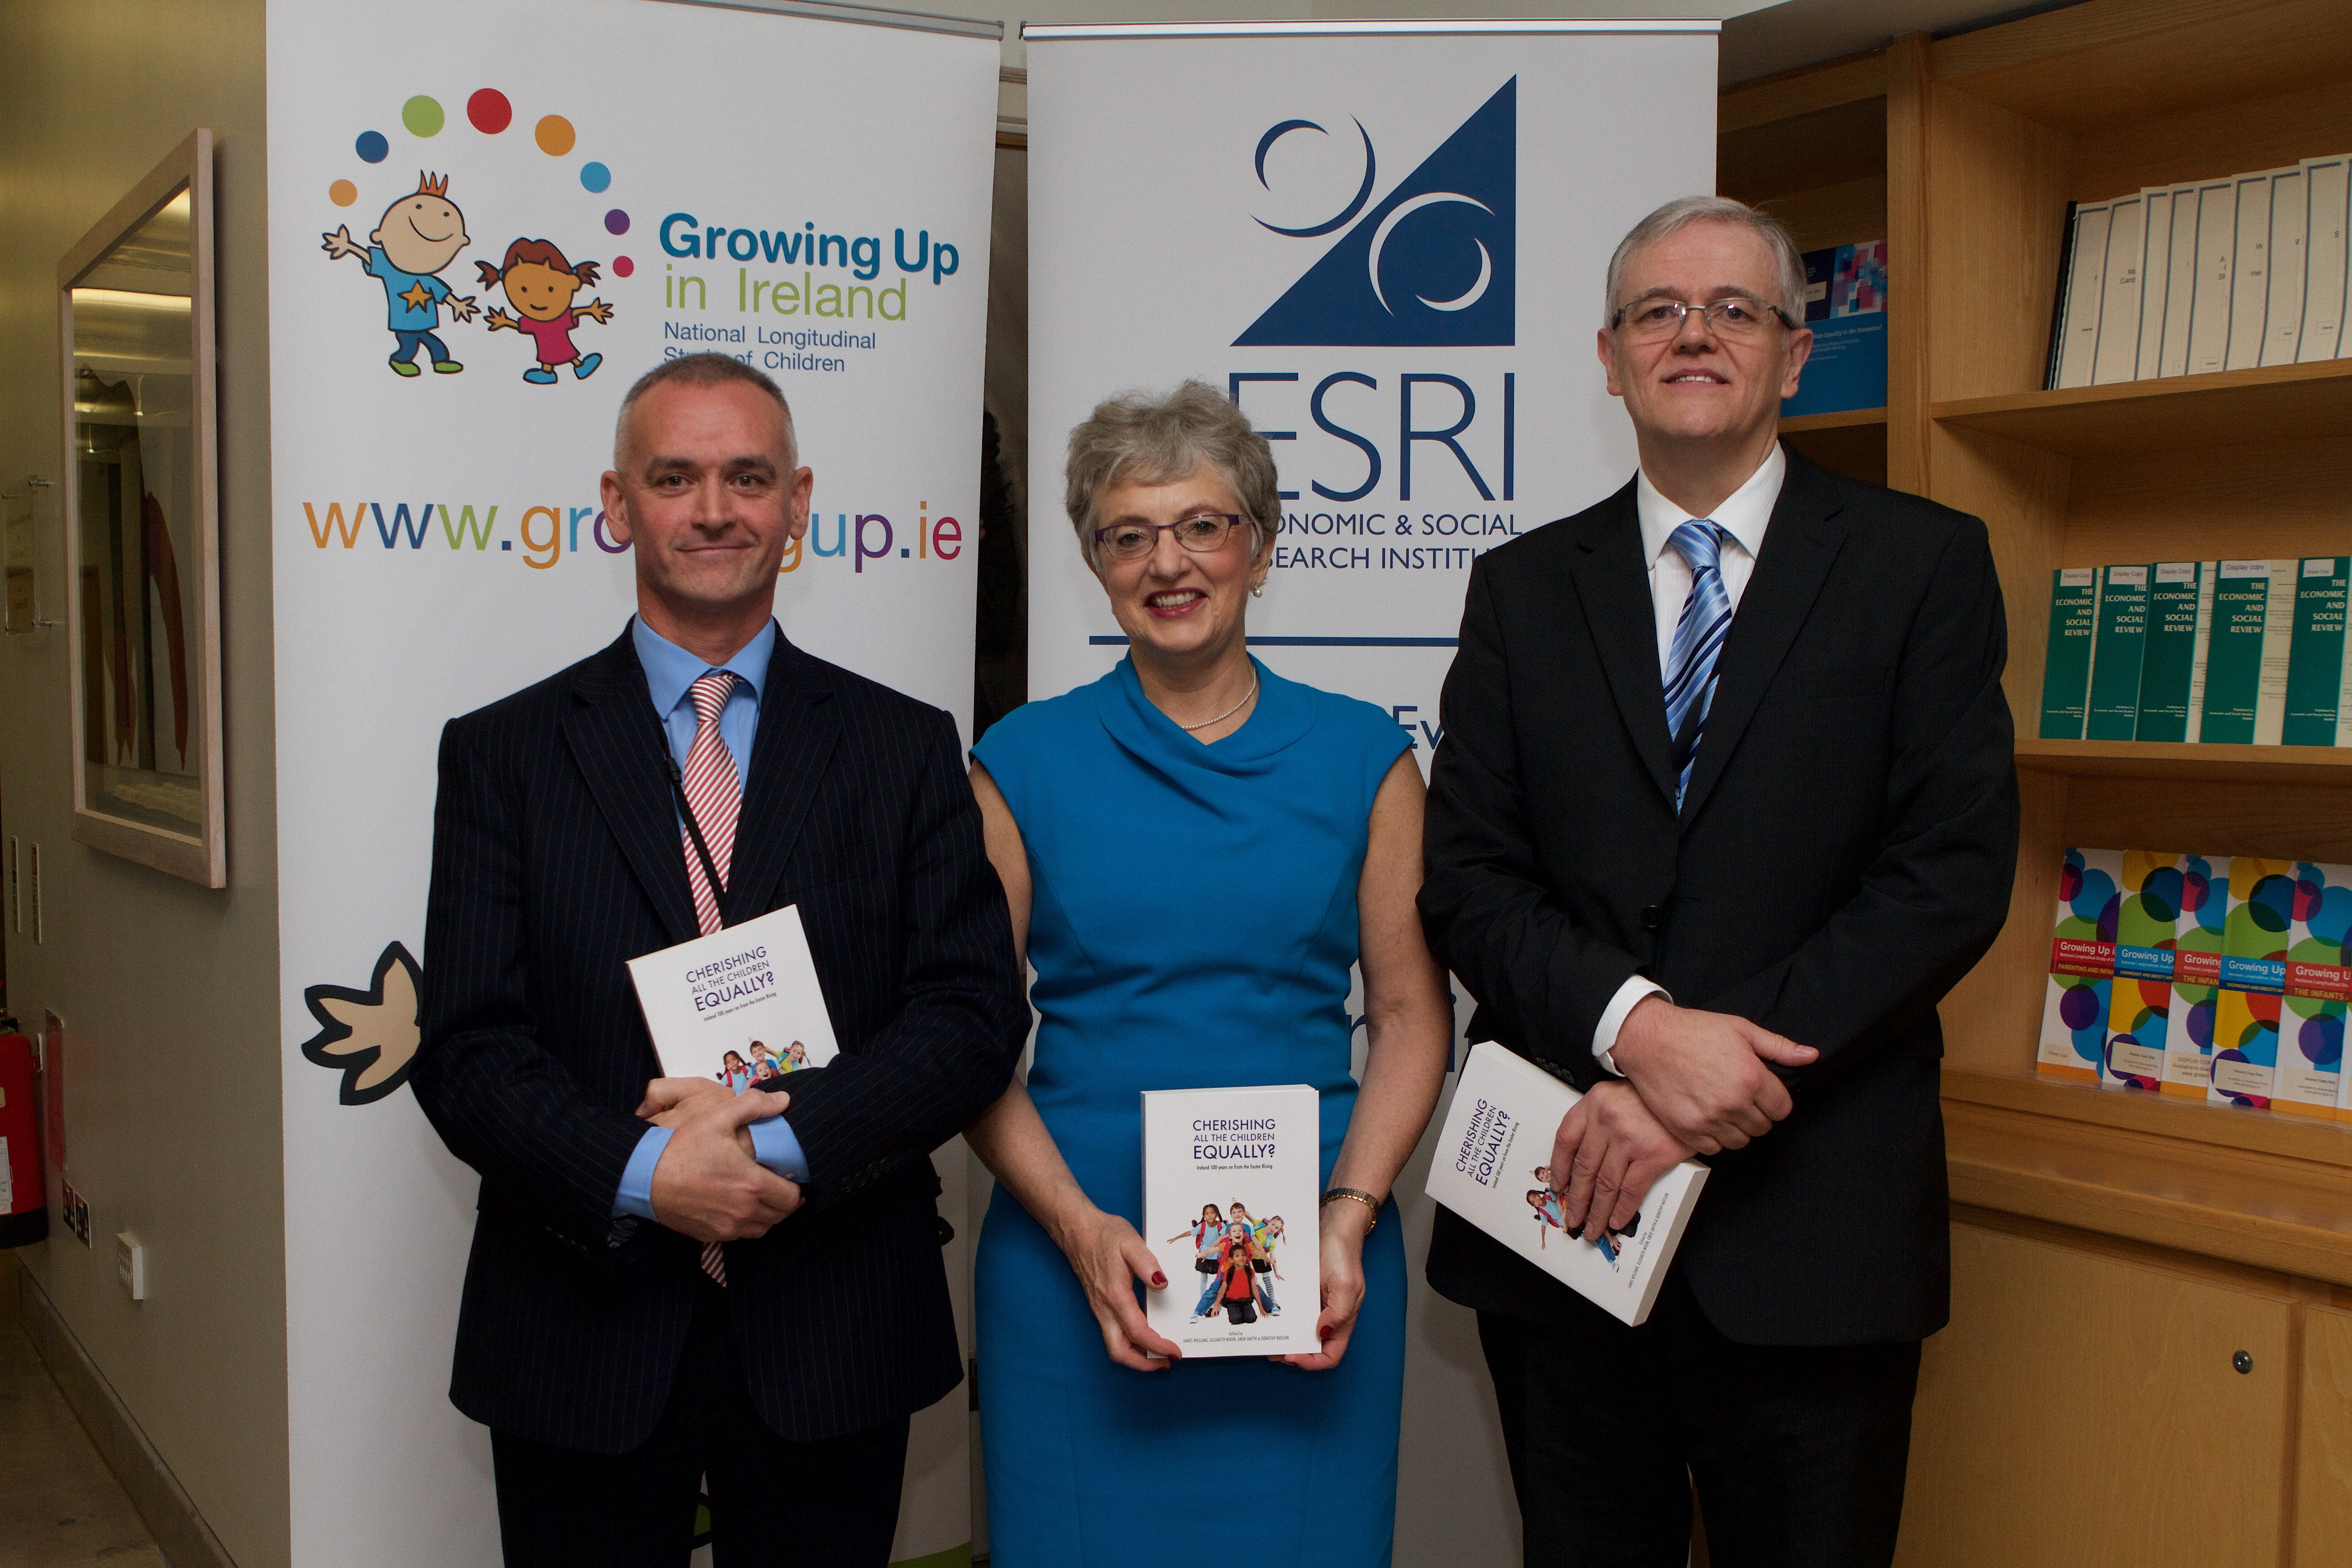 Alan Barrett, Director ESRI / Dr Katherine Zappone TD, Minister for Children and Youth Affairs / James Williams, co-editor